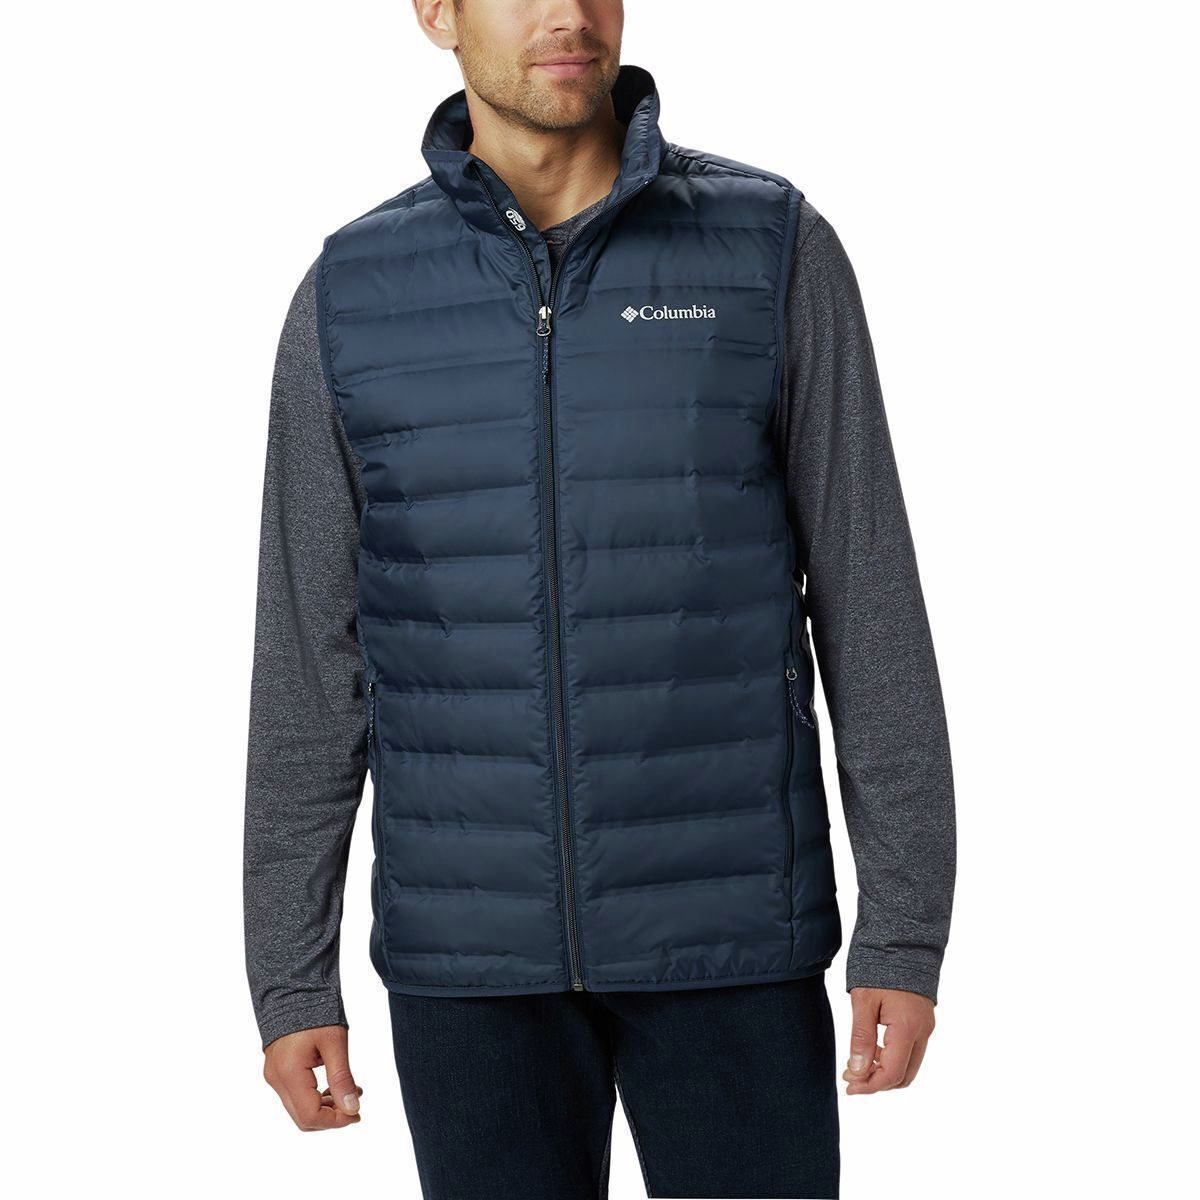 Columbia Lake 22 Down Vest Men's |